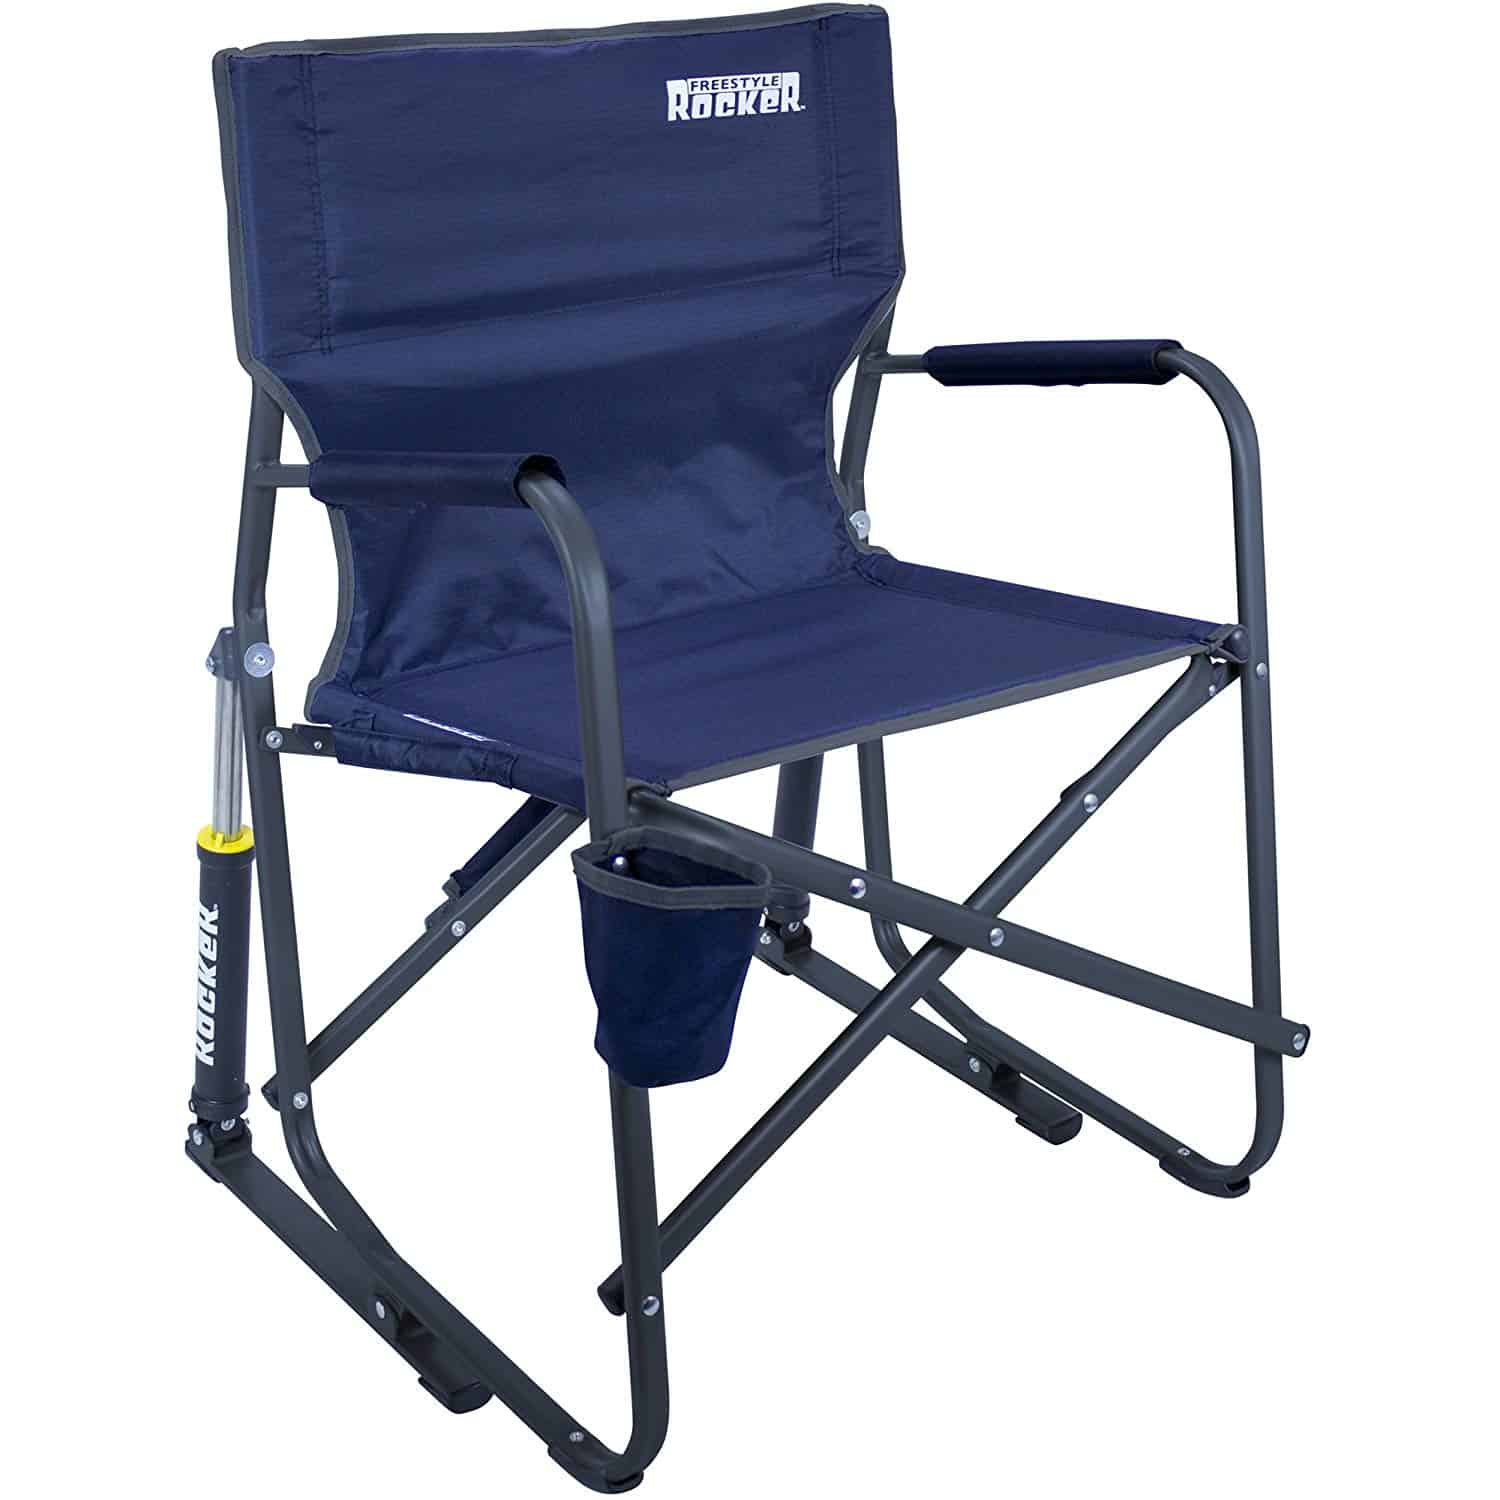 Small Camping Chair 10 Best Camping Chairs Reviewed That Are Lightweight Portable 2019